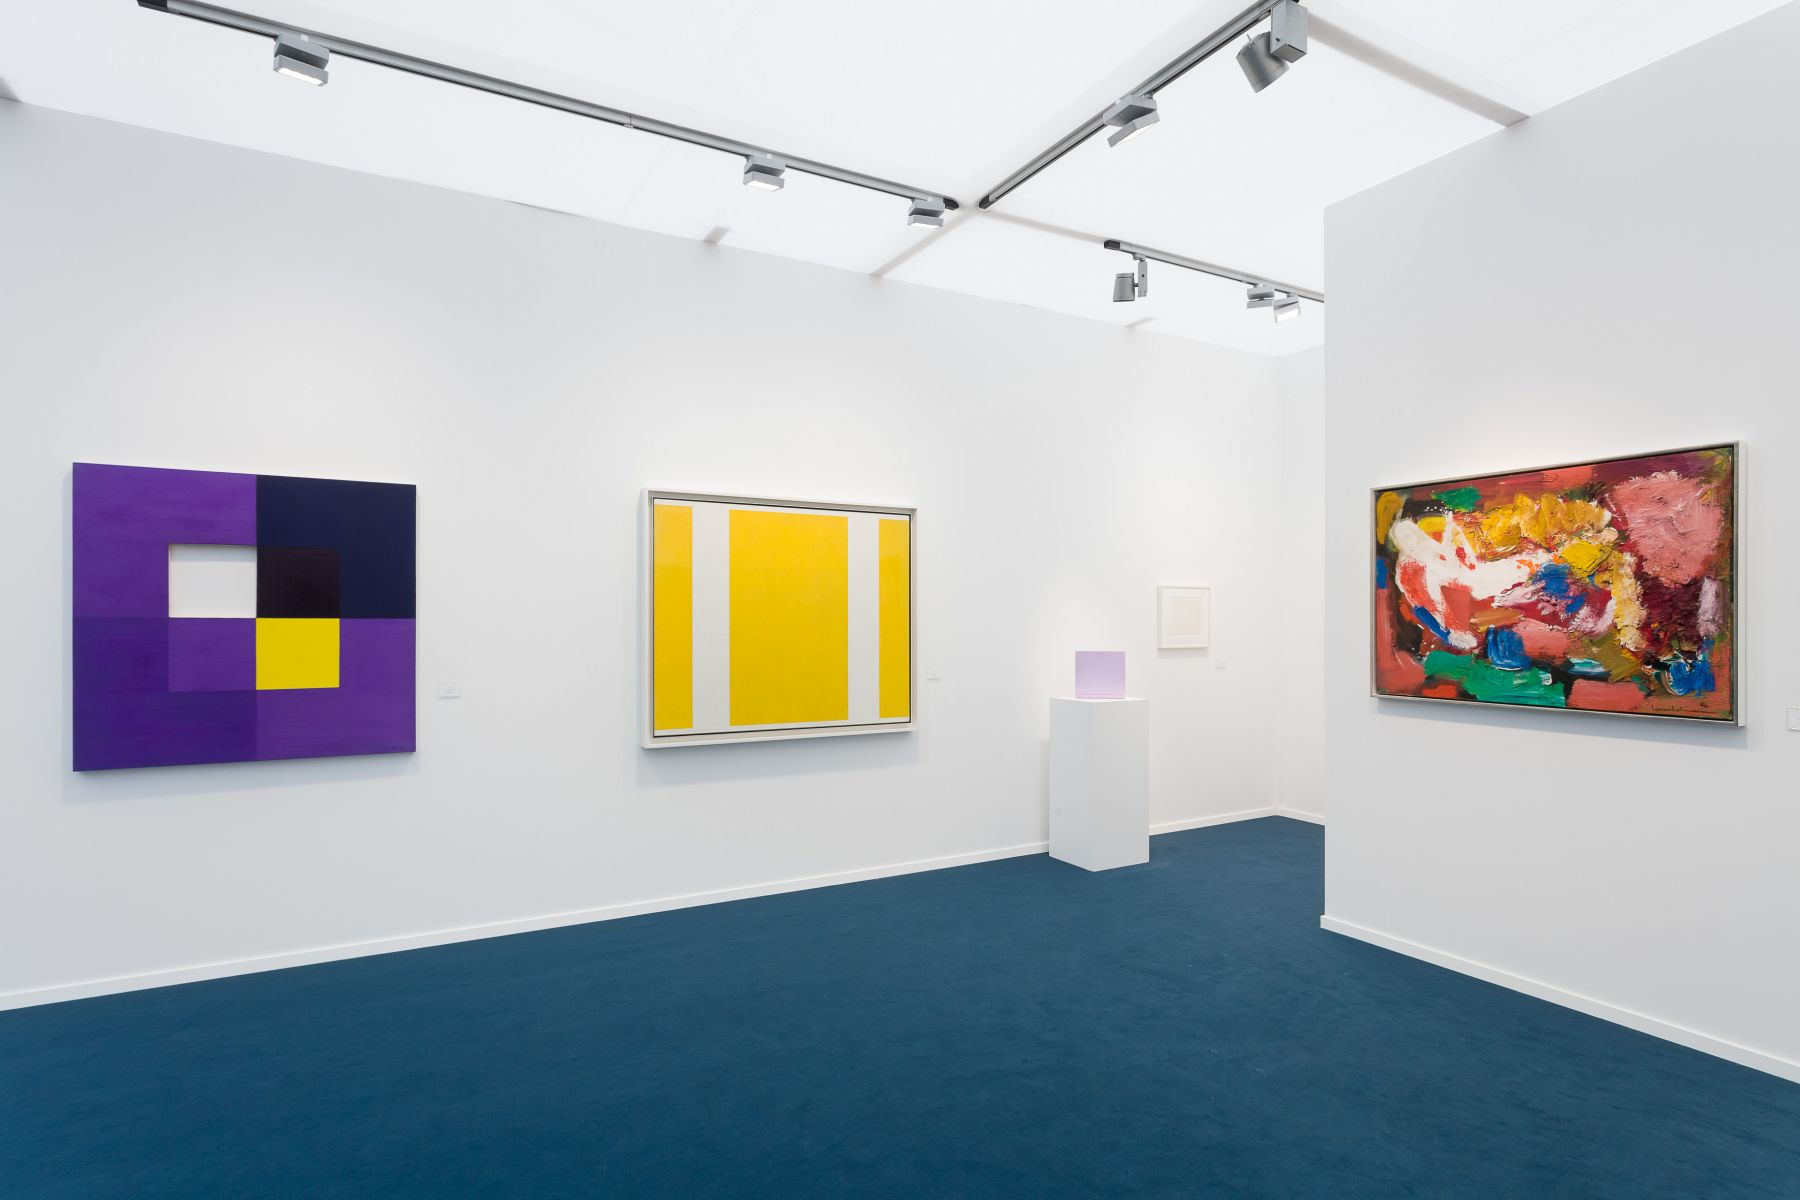 installation view of various abstract paintings at Frieze Masters London